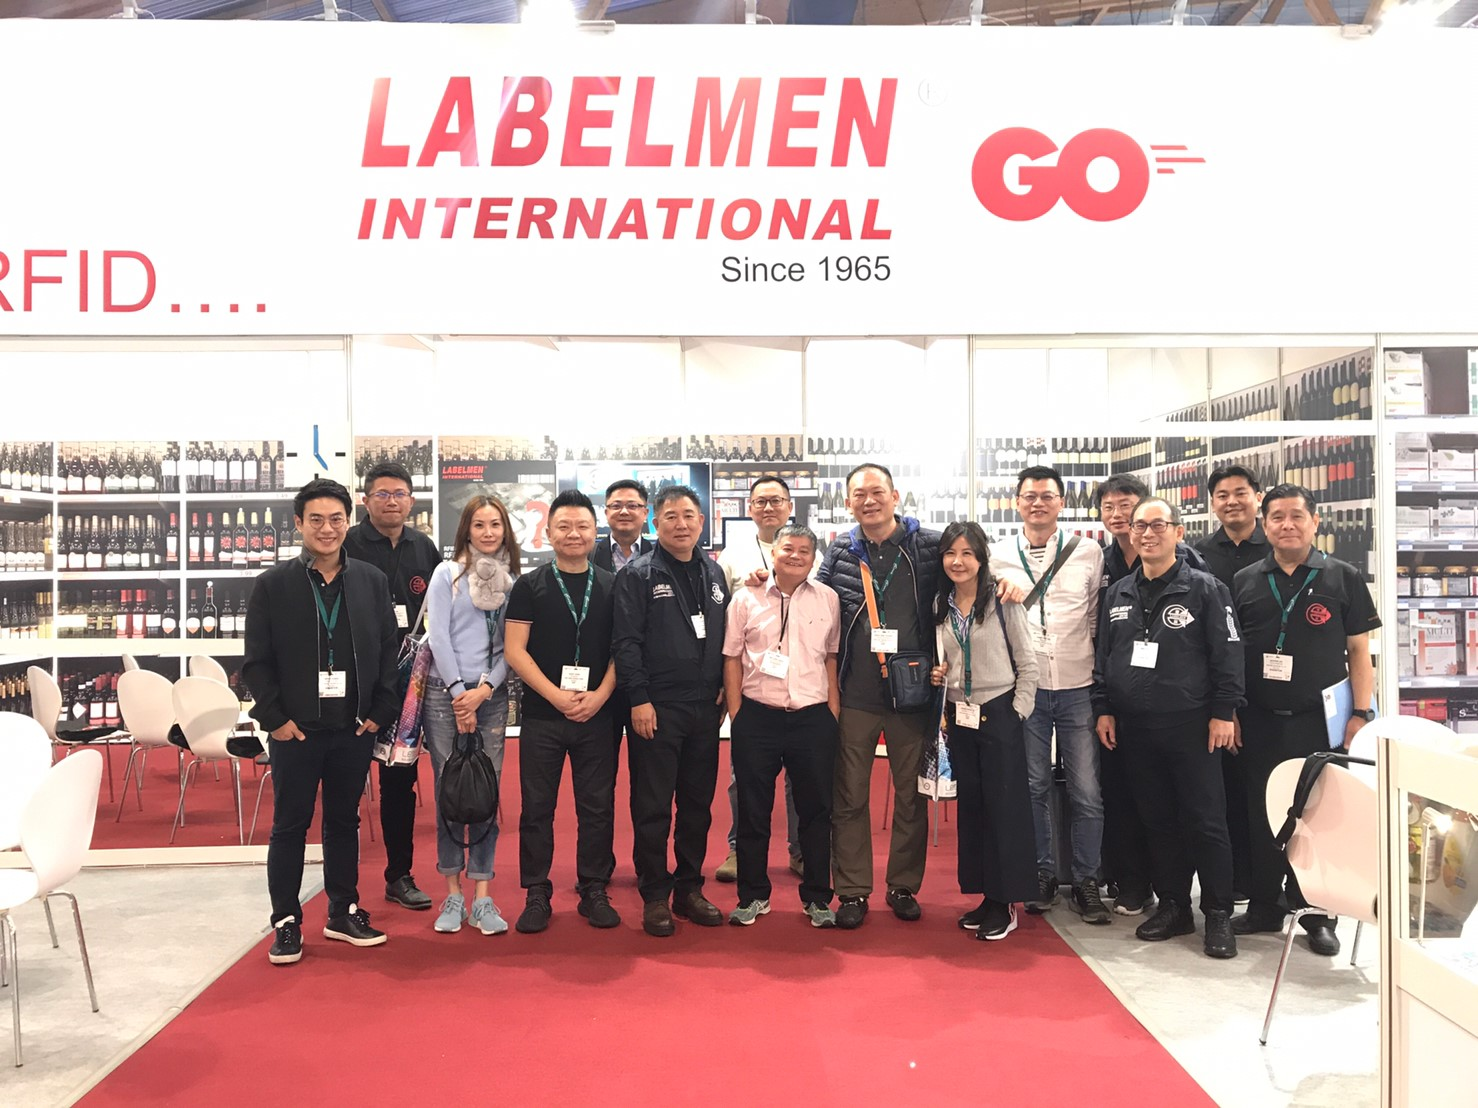 LABELMEN is participating in LABELEXPO EUROPE 2019